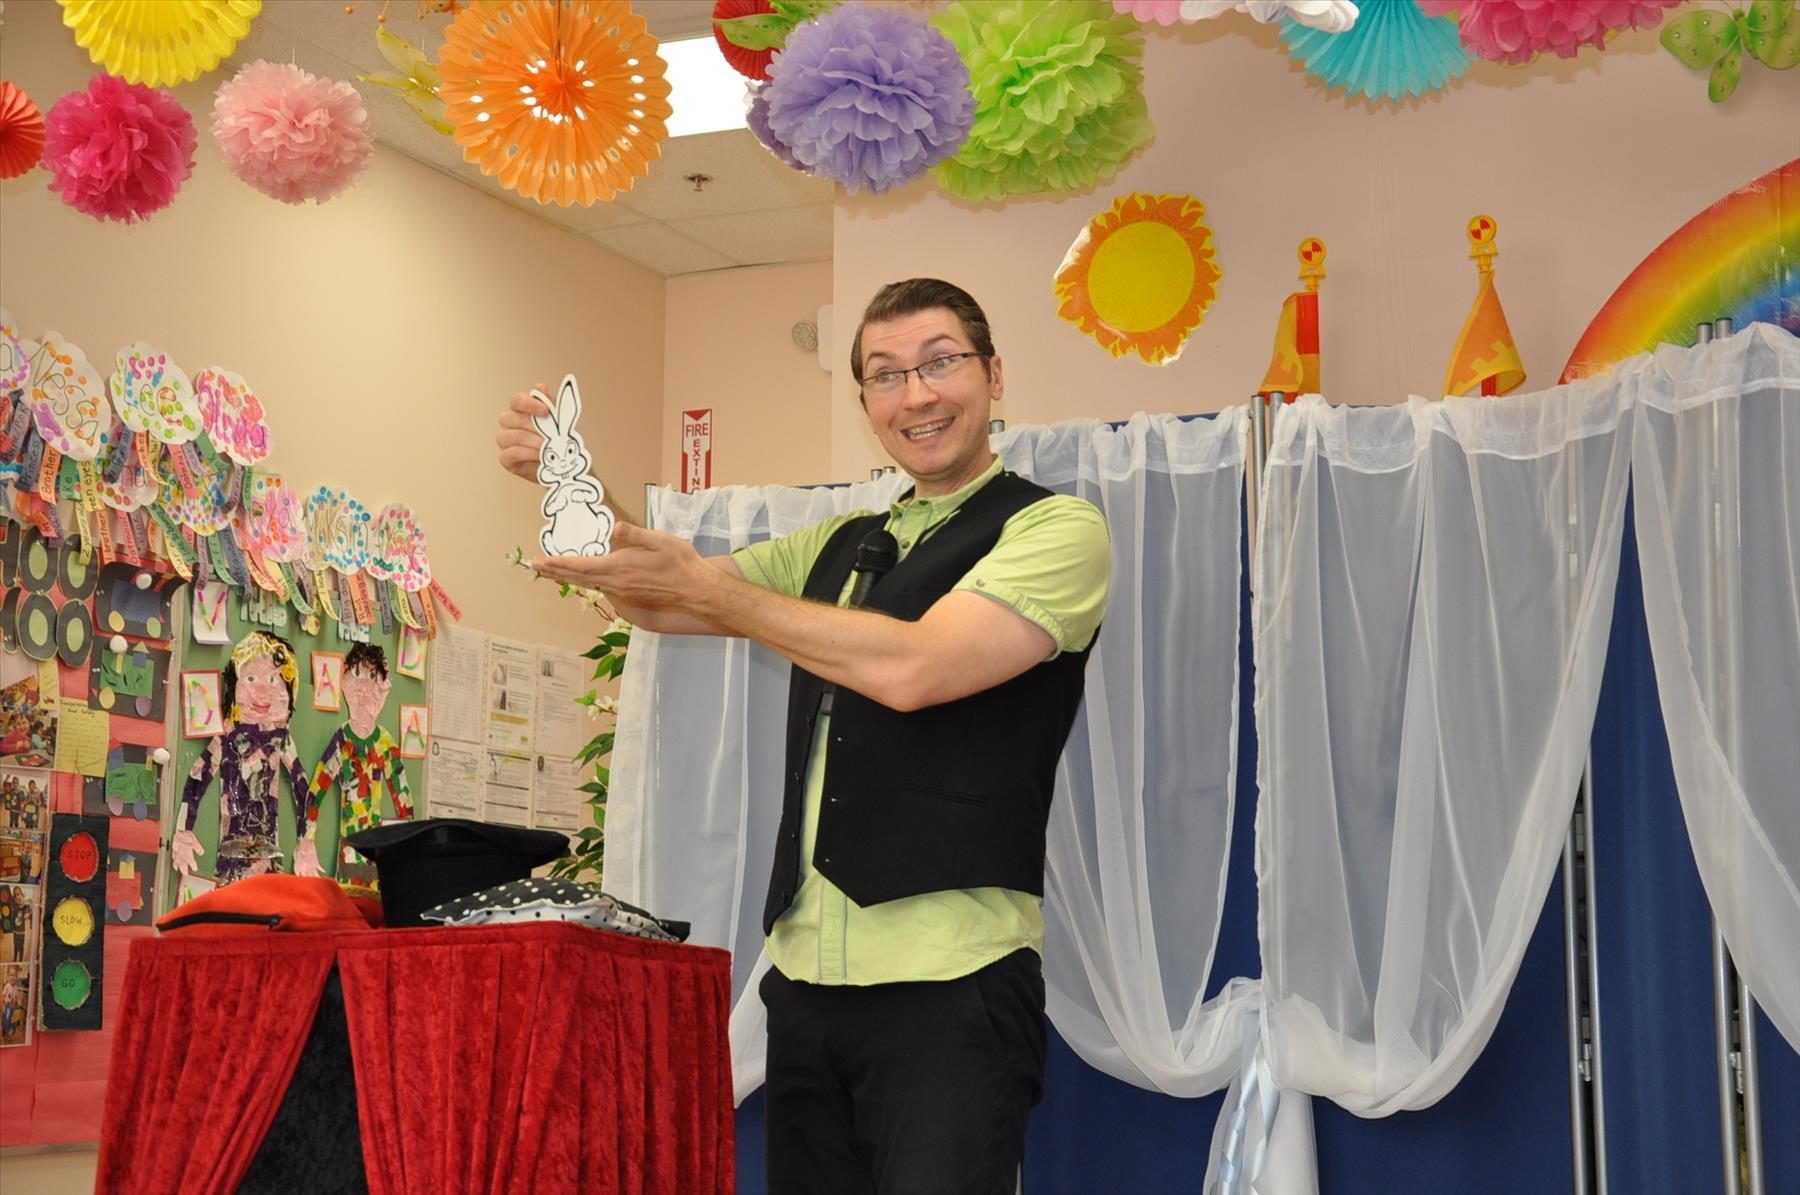 We loved Scott Dietrichs daycare magic show at Imaginarium For Kids Childcare Center